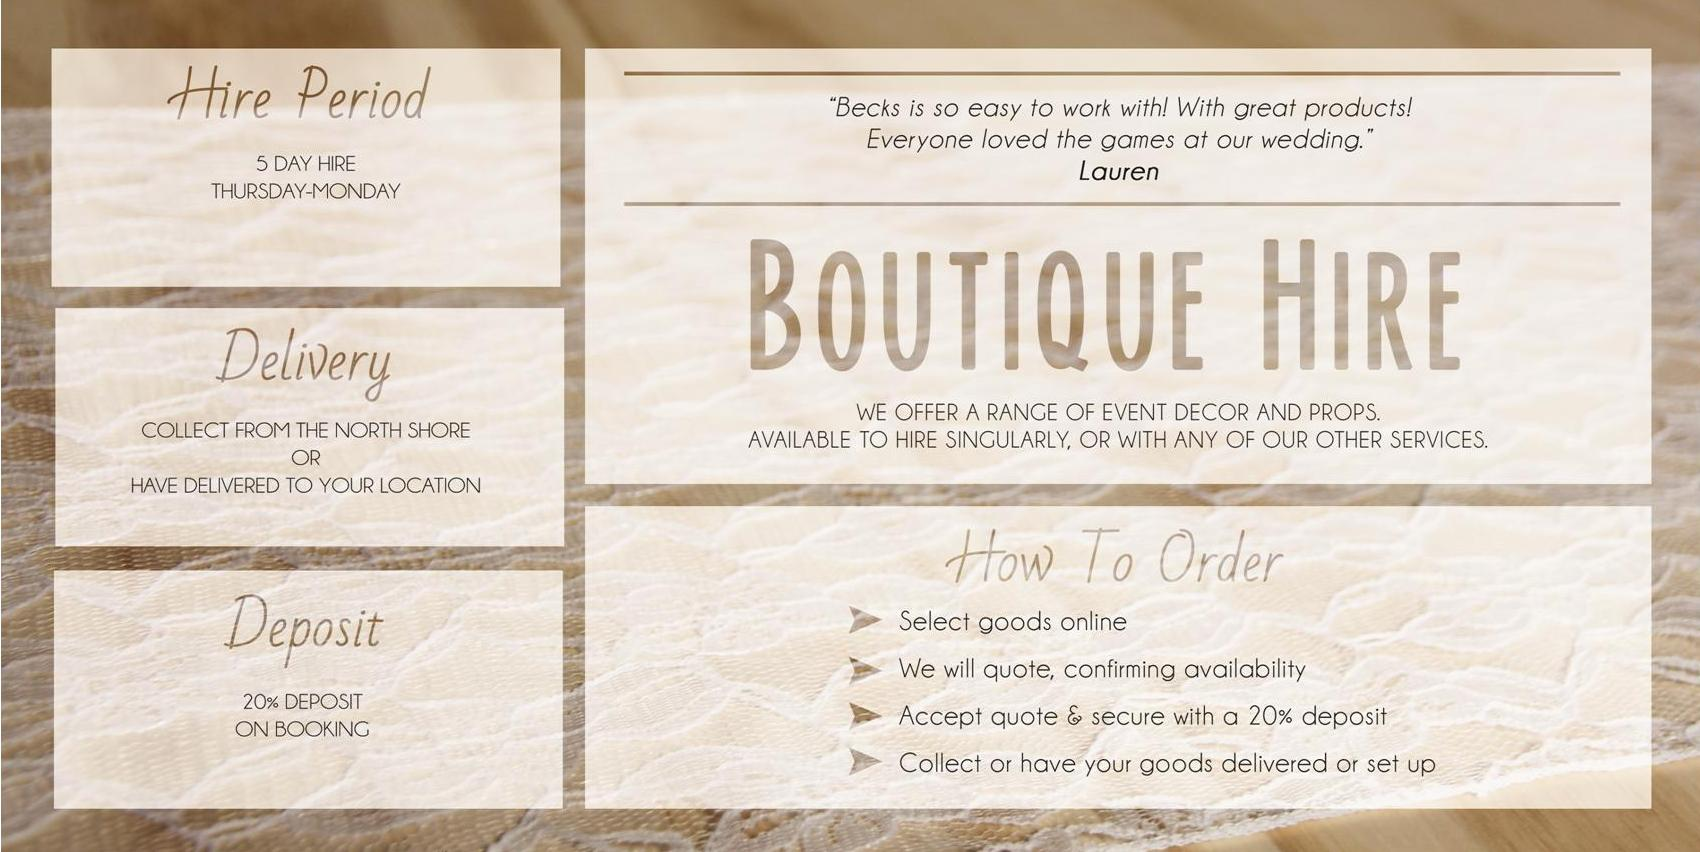 Boutique Hire